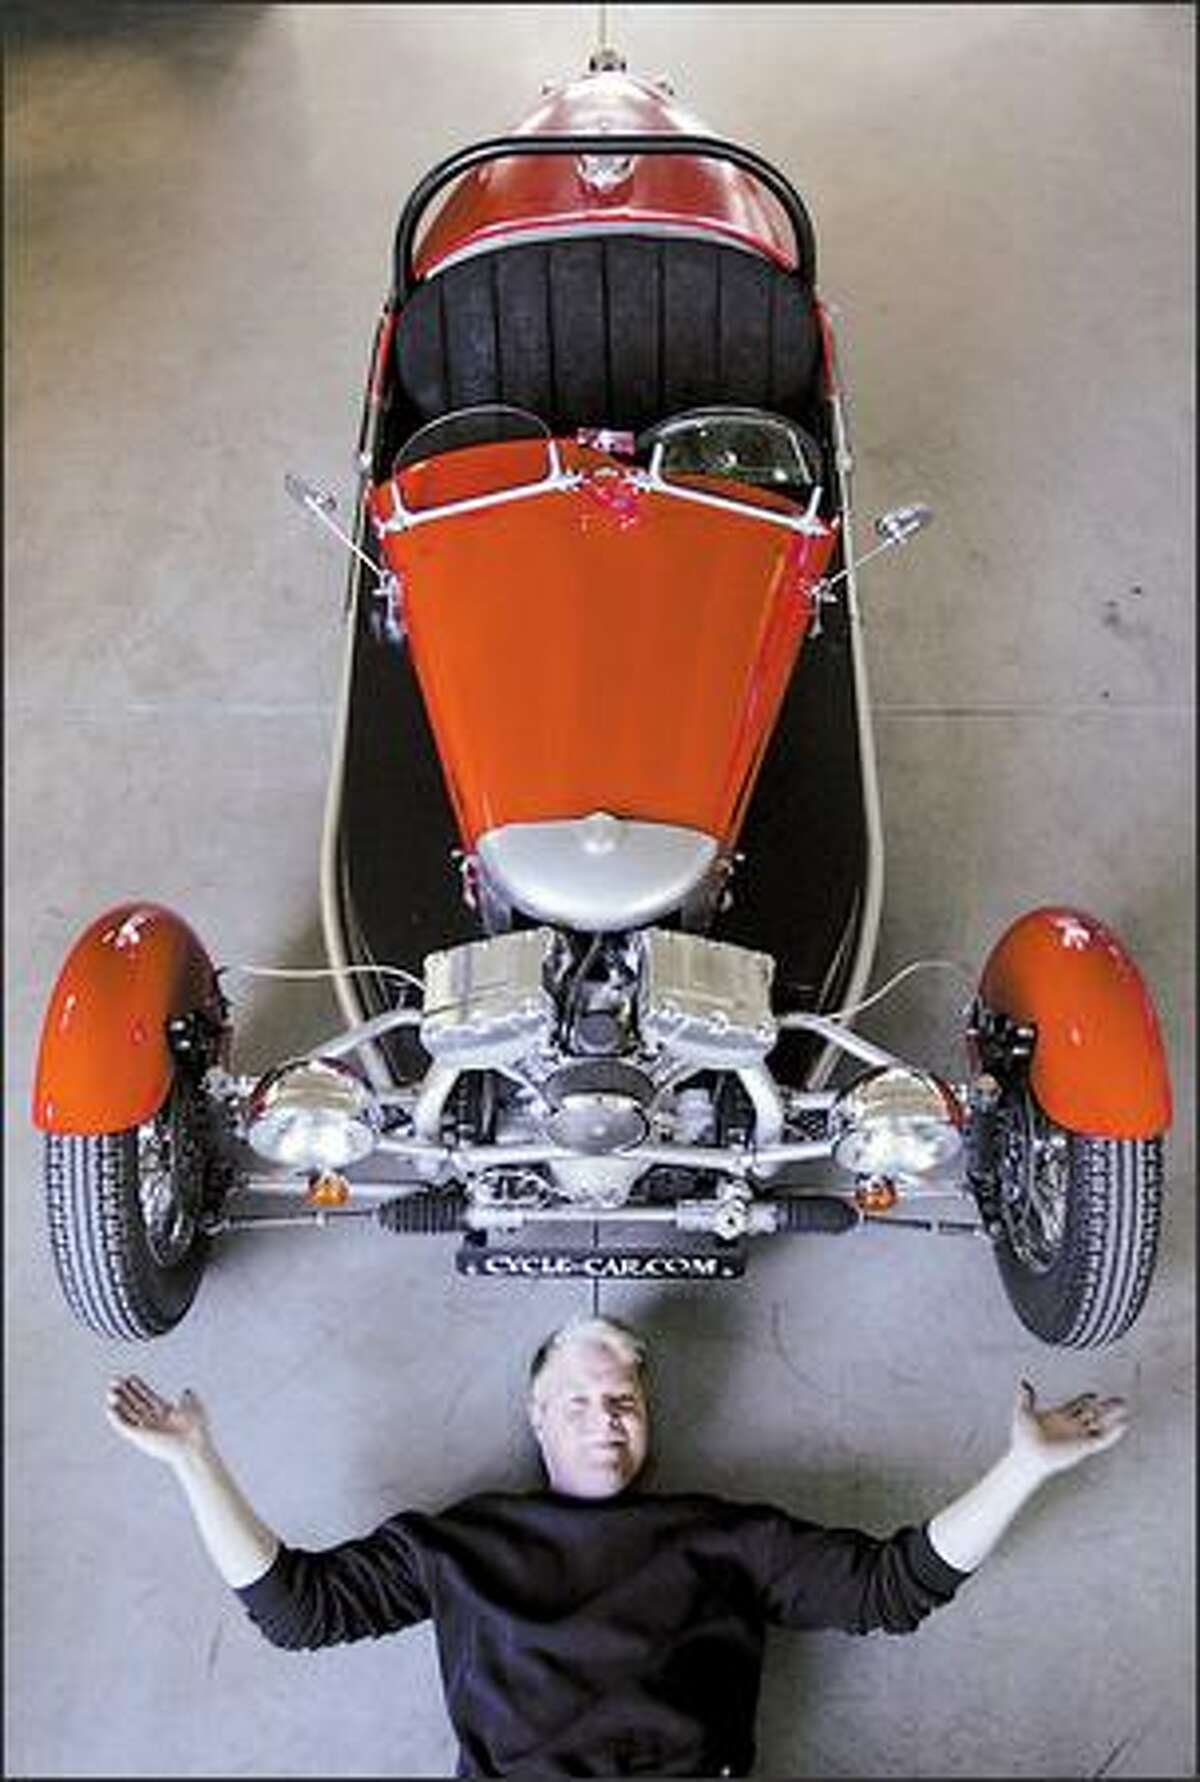 Pete Larsen displays his custom-designed, three-wheeled ACE Cycle Car, built using a Harley-Davidson engine, at his shop, Liberty Motors of Seattle. Larsen was inspired by the British-made Morgan models from the 1930s.